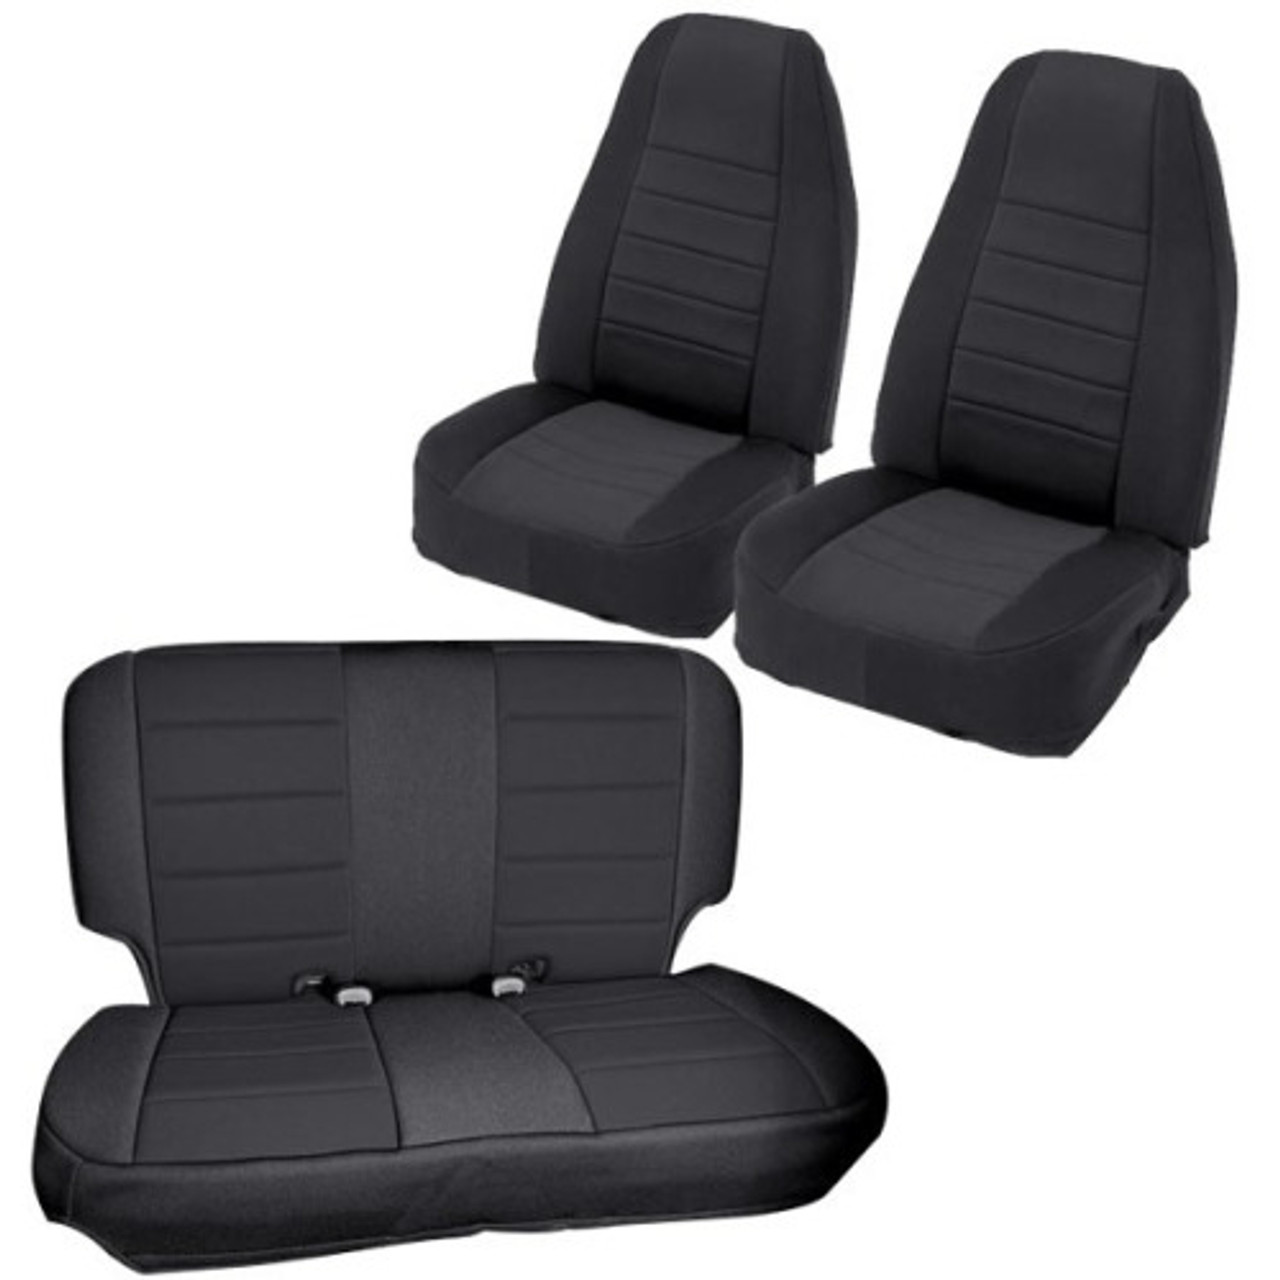 Smittybilt 471801 Front Neoprene Seat Covers with FREE Rear Cover for Jeep Wrangler JK 4 Door 2007-2016